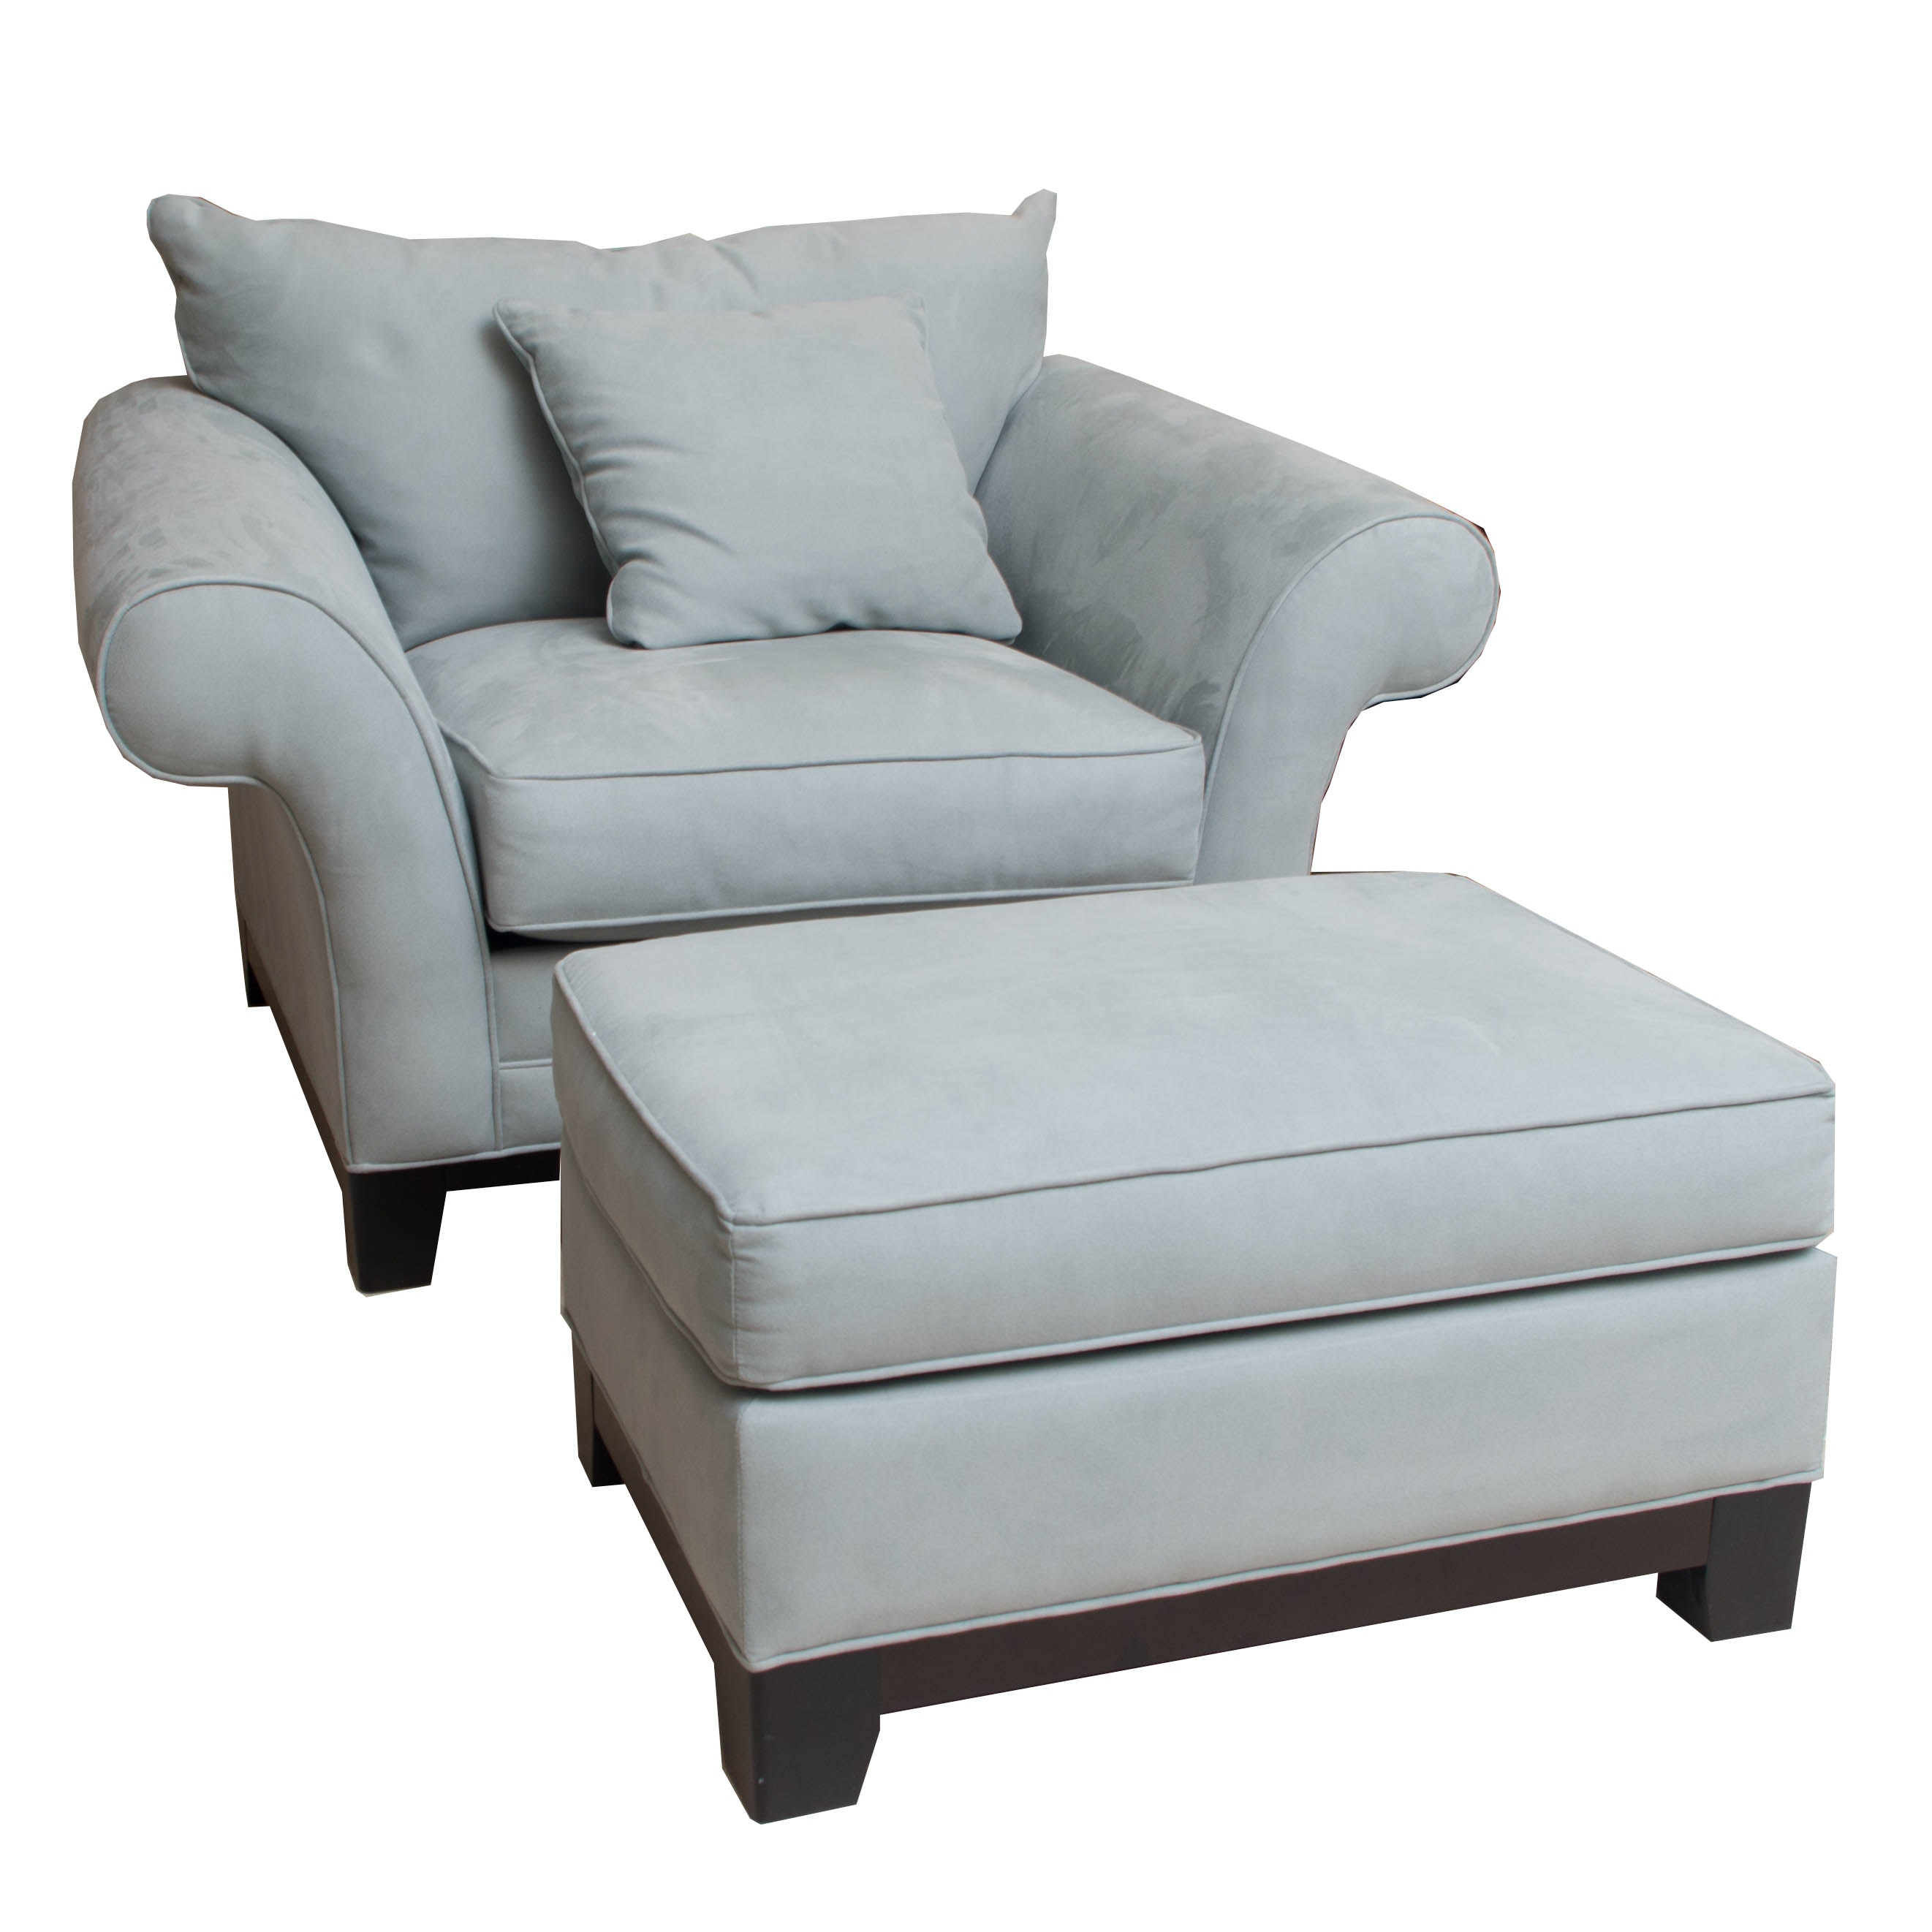 Cindy Crawford Home Pale Blue-Upholstered Armchair and Ottoman